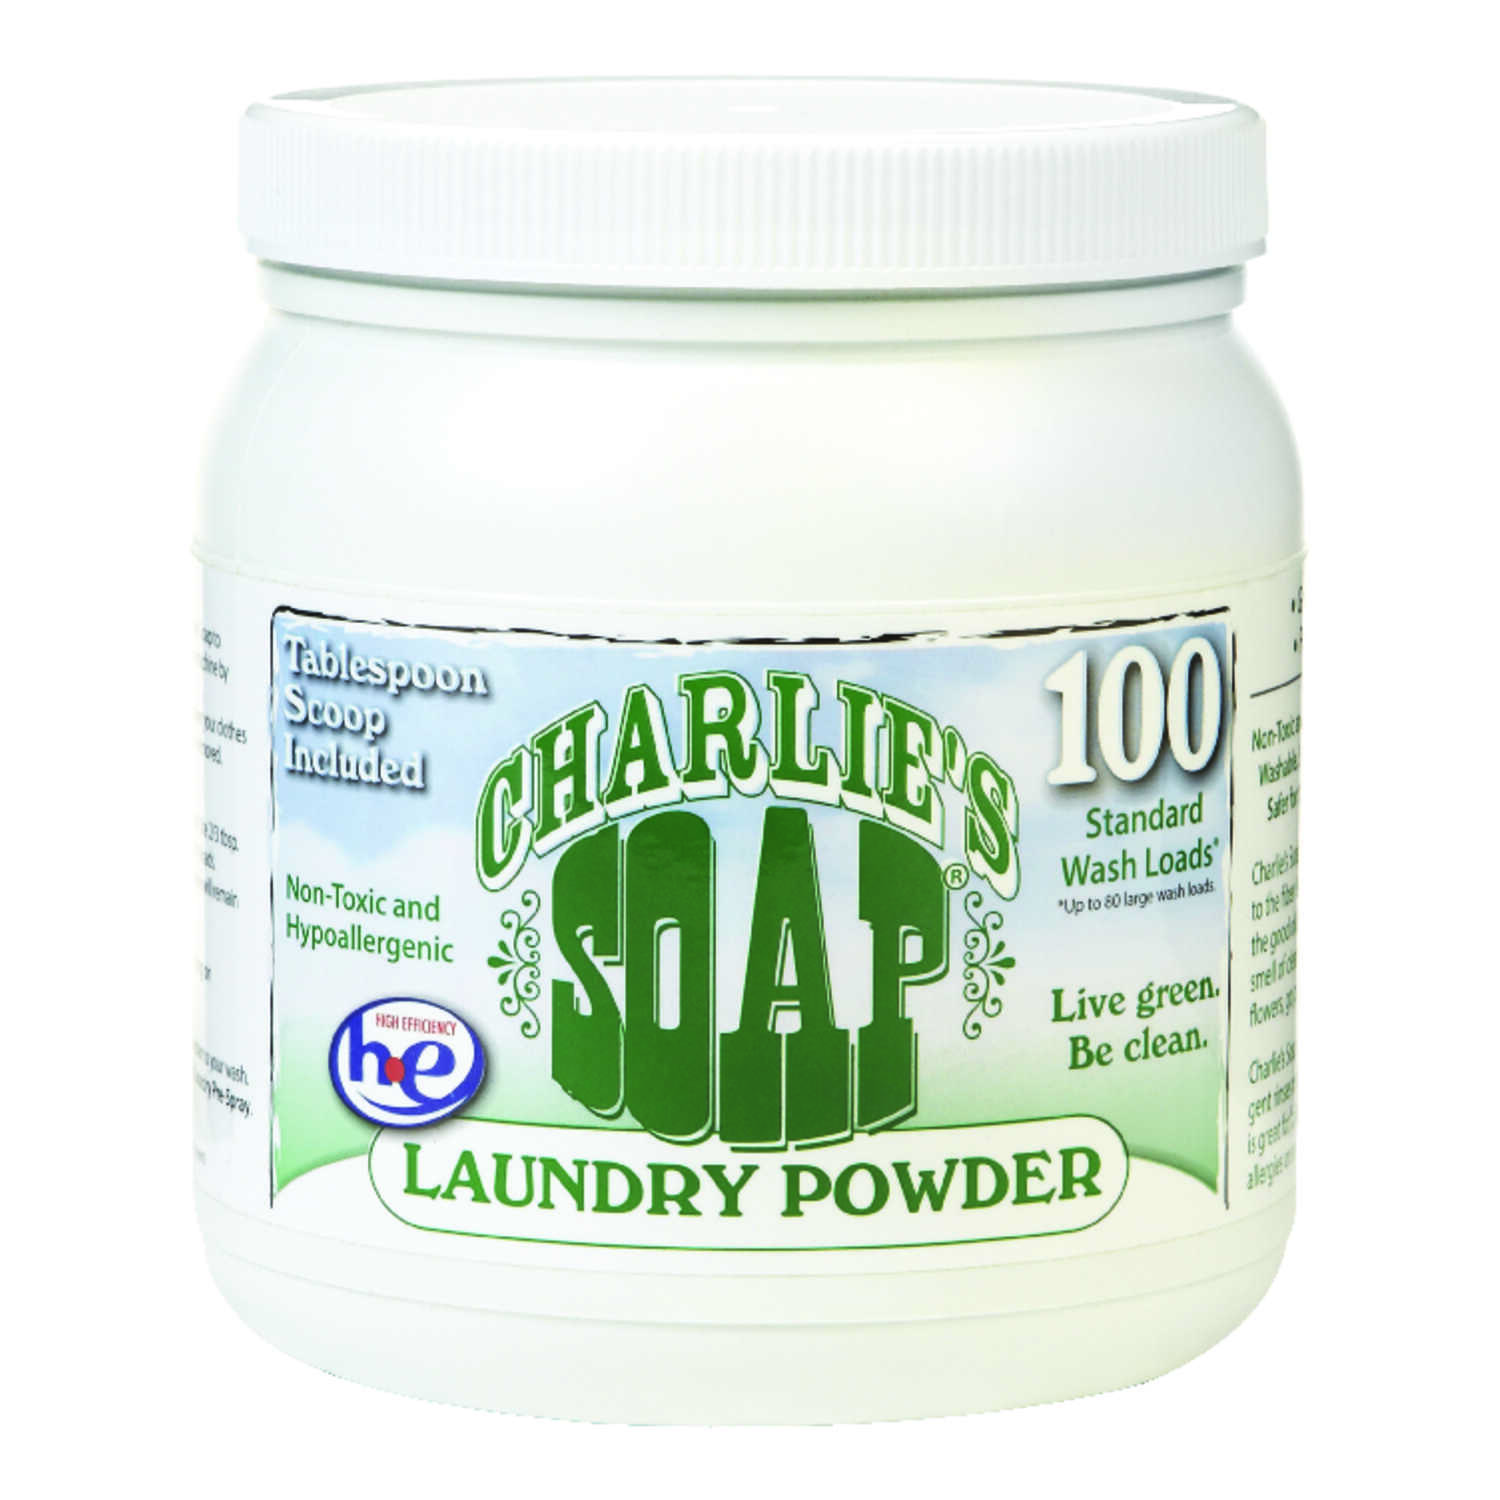 Charlie's Soap  No Scent Laundry Detergent  Powder  2.64 lb.